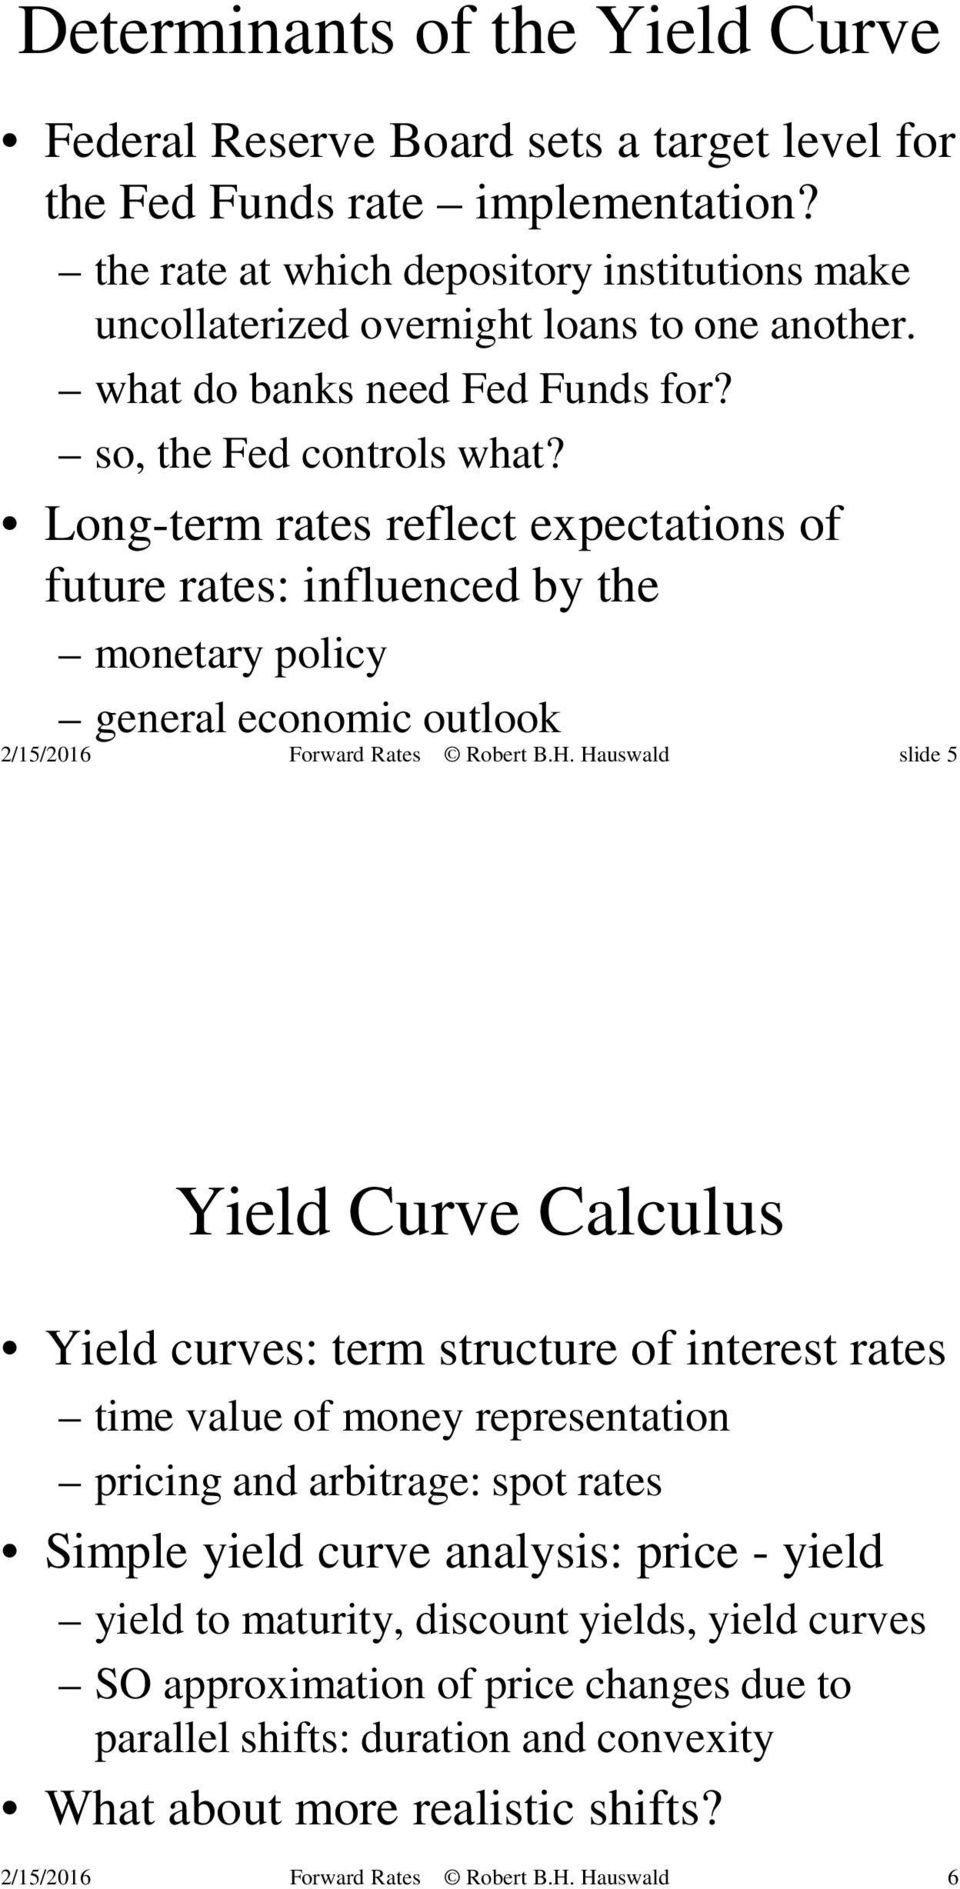 Long-term rates reflect expectations of future rates: influenced by the monetary policy general economic outlook slide 5 Yield Curve Calculus Yield curves: term structure of interest